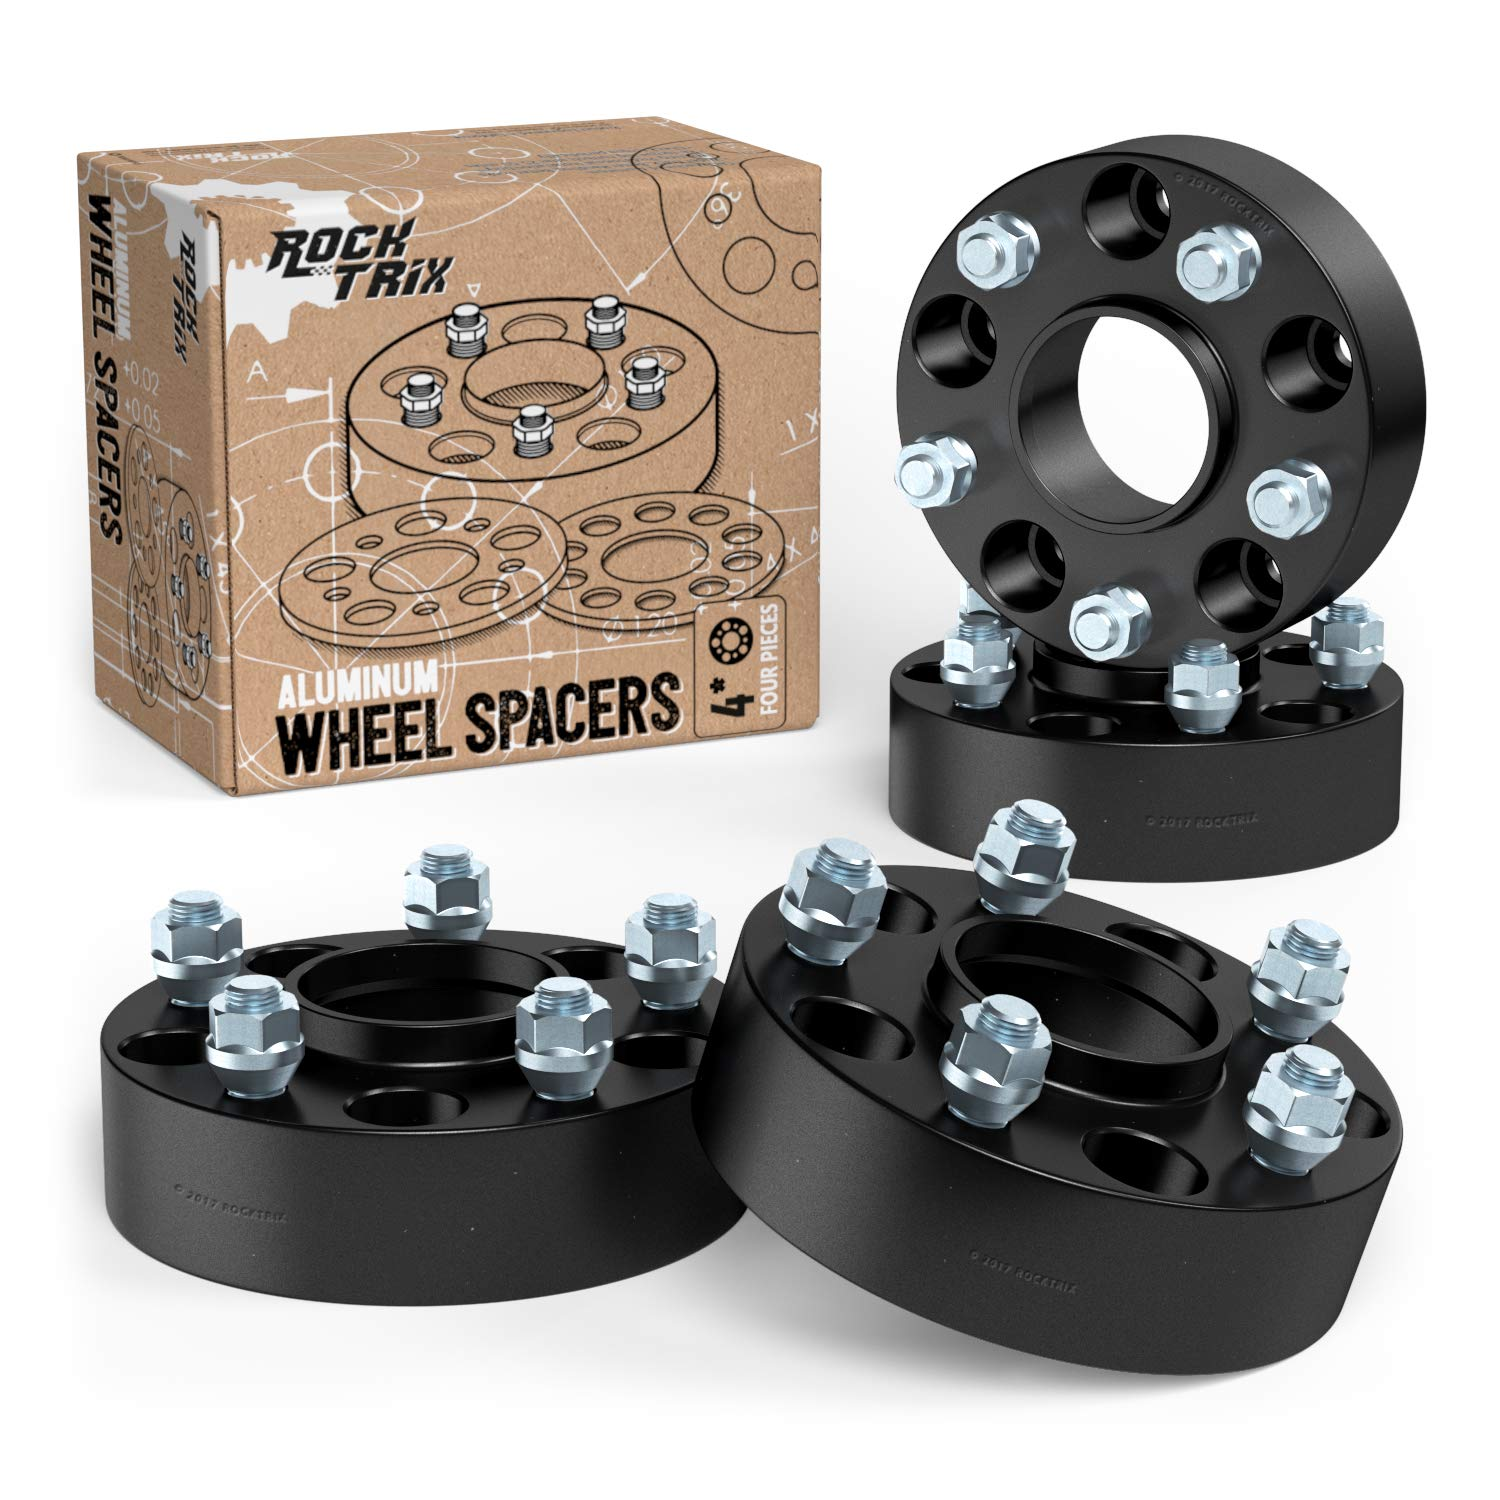 RockTrix 1.5 inch Hubcentric 5x5 to 5x5 Wheel Spacers (71.5mm Bore, 1/2x20 Studs) Compatible with Jeep 99-10 Grand Cherokee WJ WK, 07-18 Wrangler JK JKU, 06-10 Commander XK - Black 38mm 5x127 4pcs by RockTrix